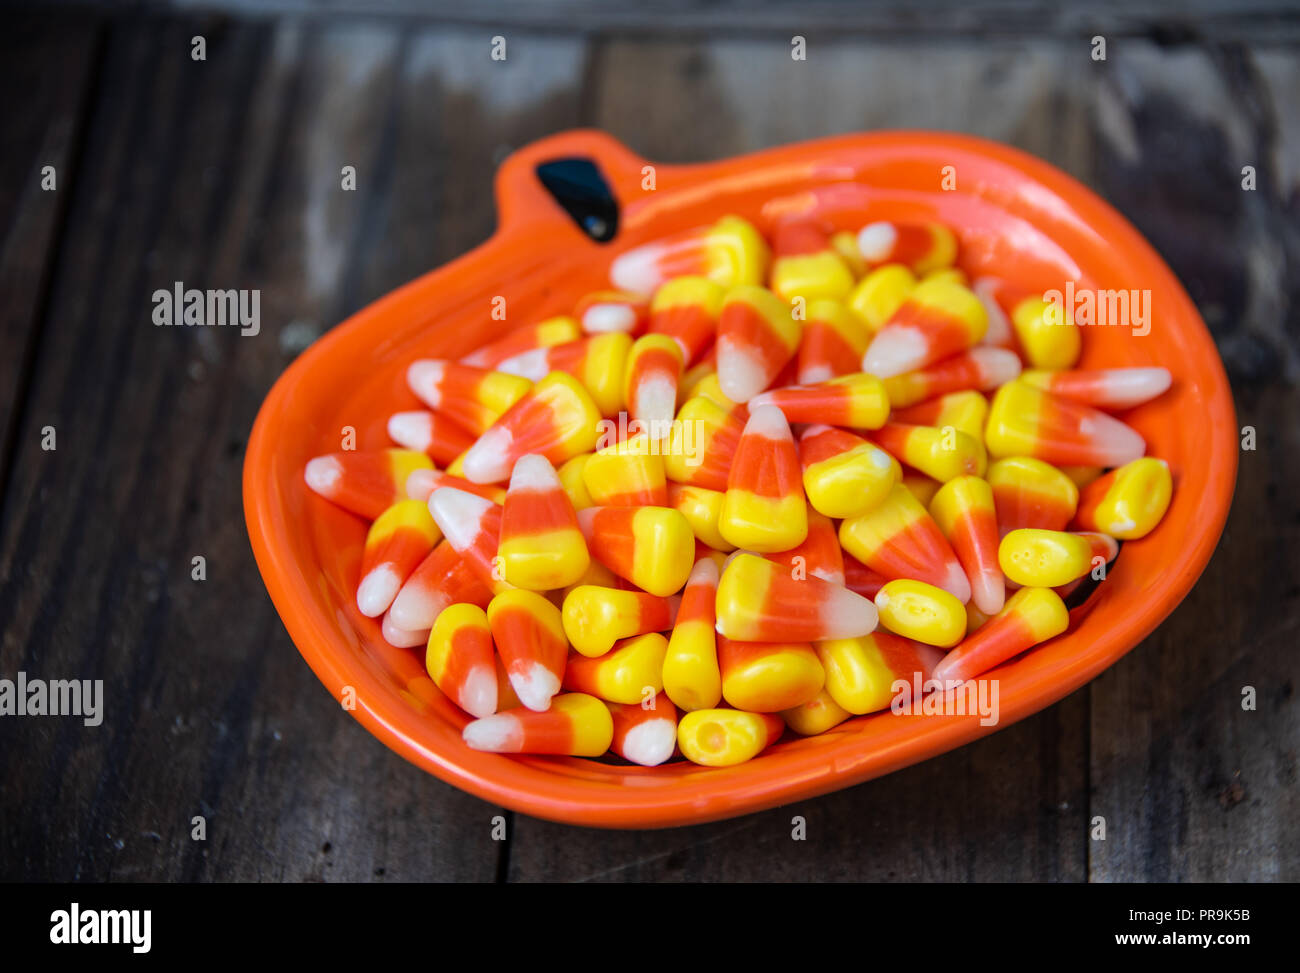 Halloween candy corn in a bright orange pumpkin shaped bowl - Stock Image